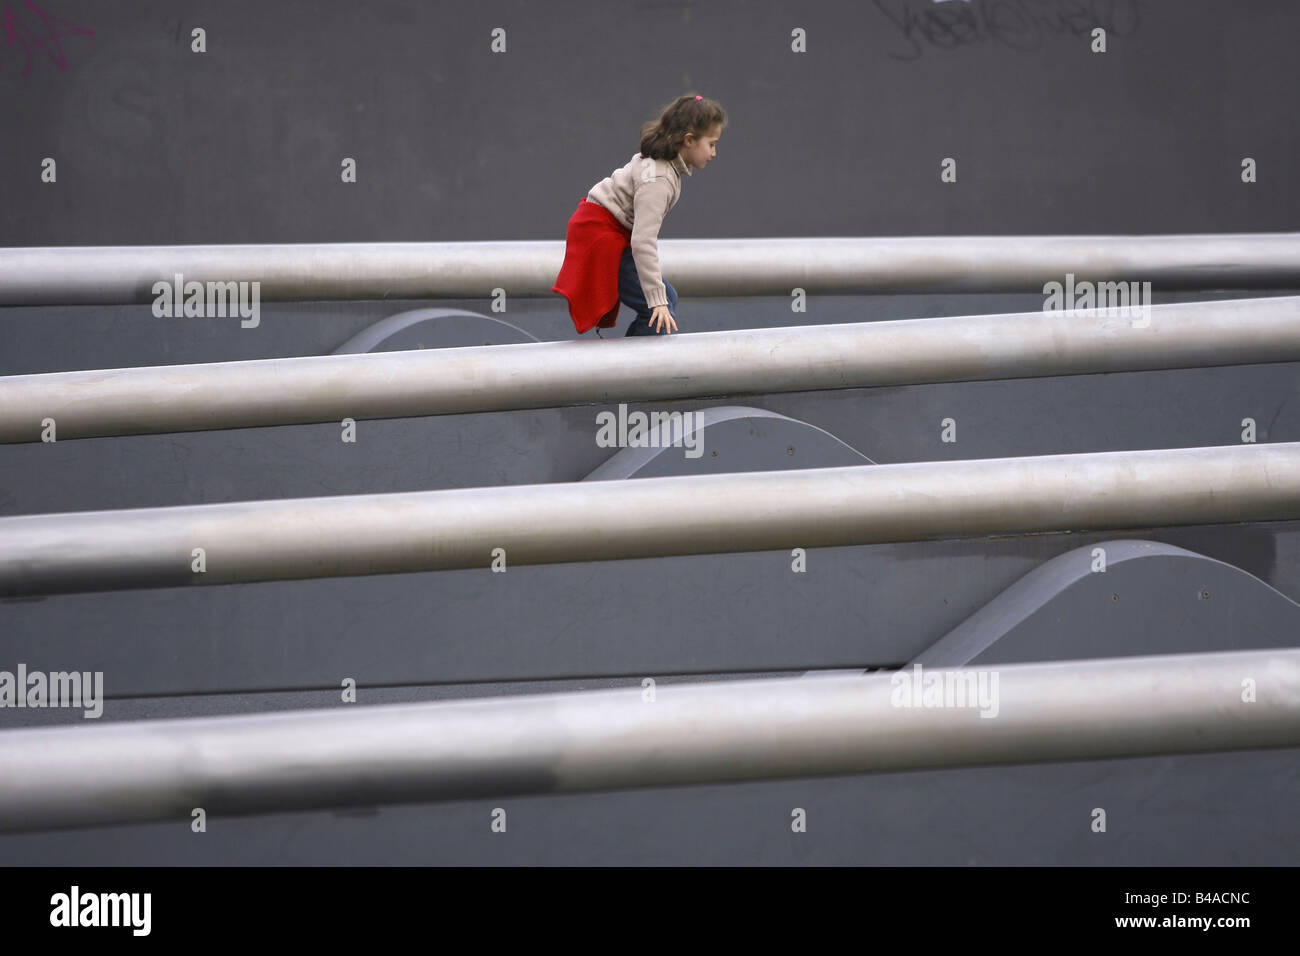 Young girl on Europes longest seesaw in Tilla-Durieux-Park, Berlin, Germany - Stock Image